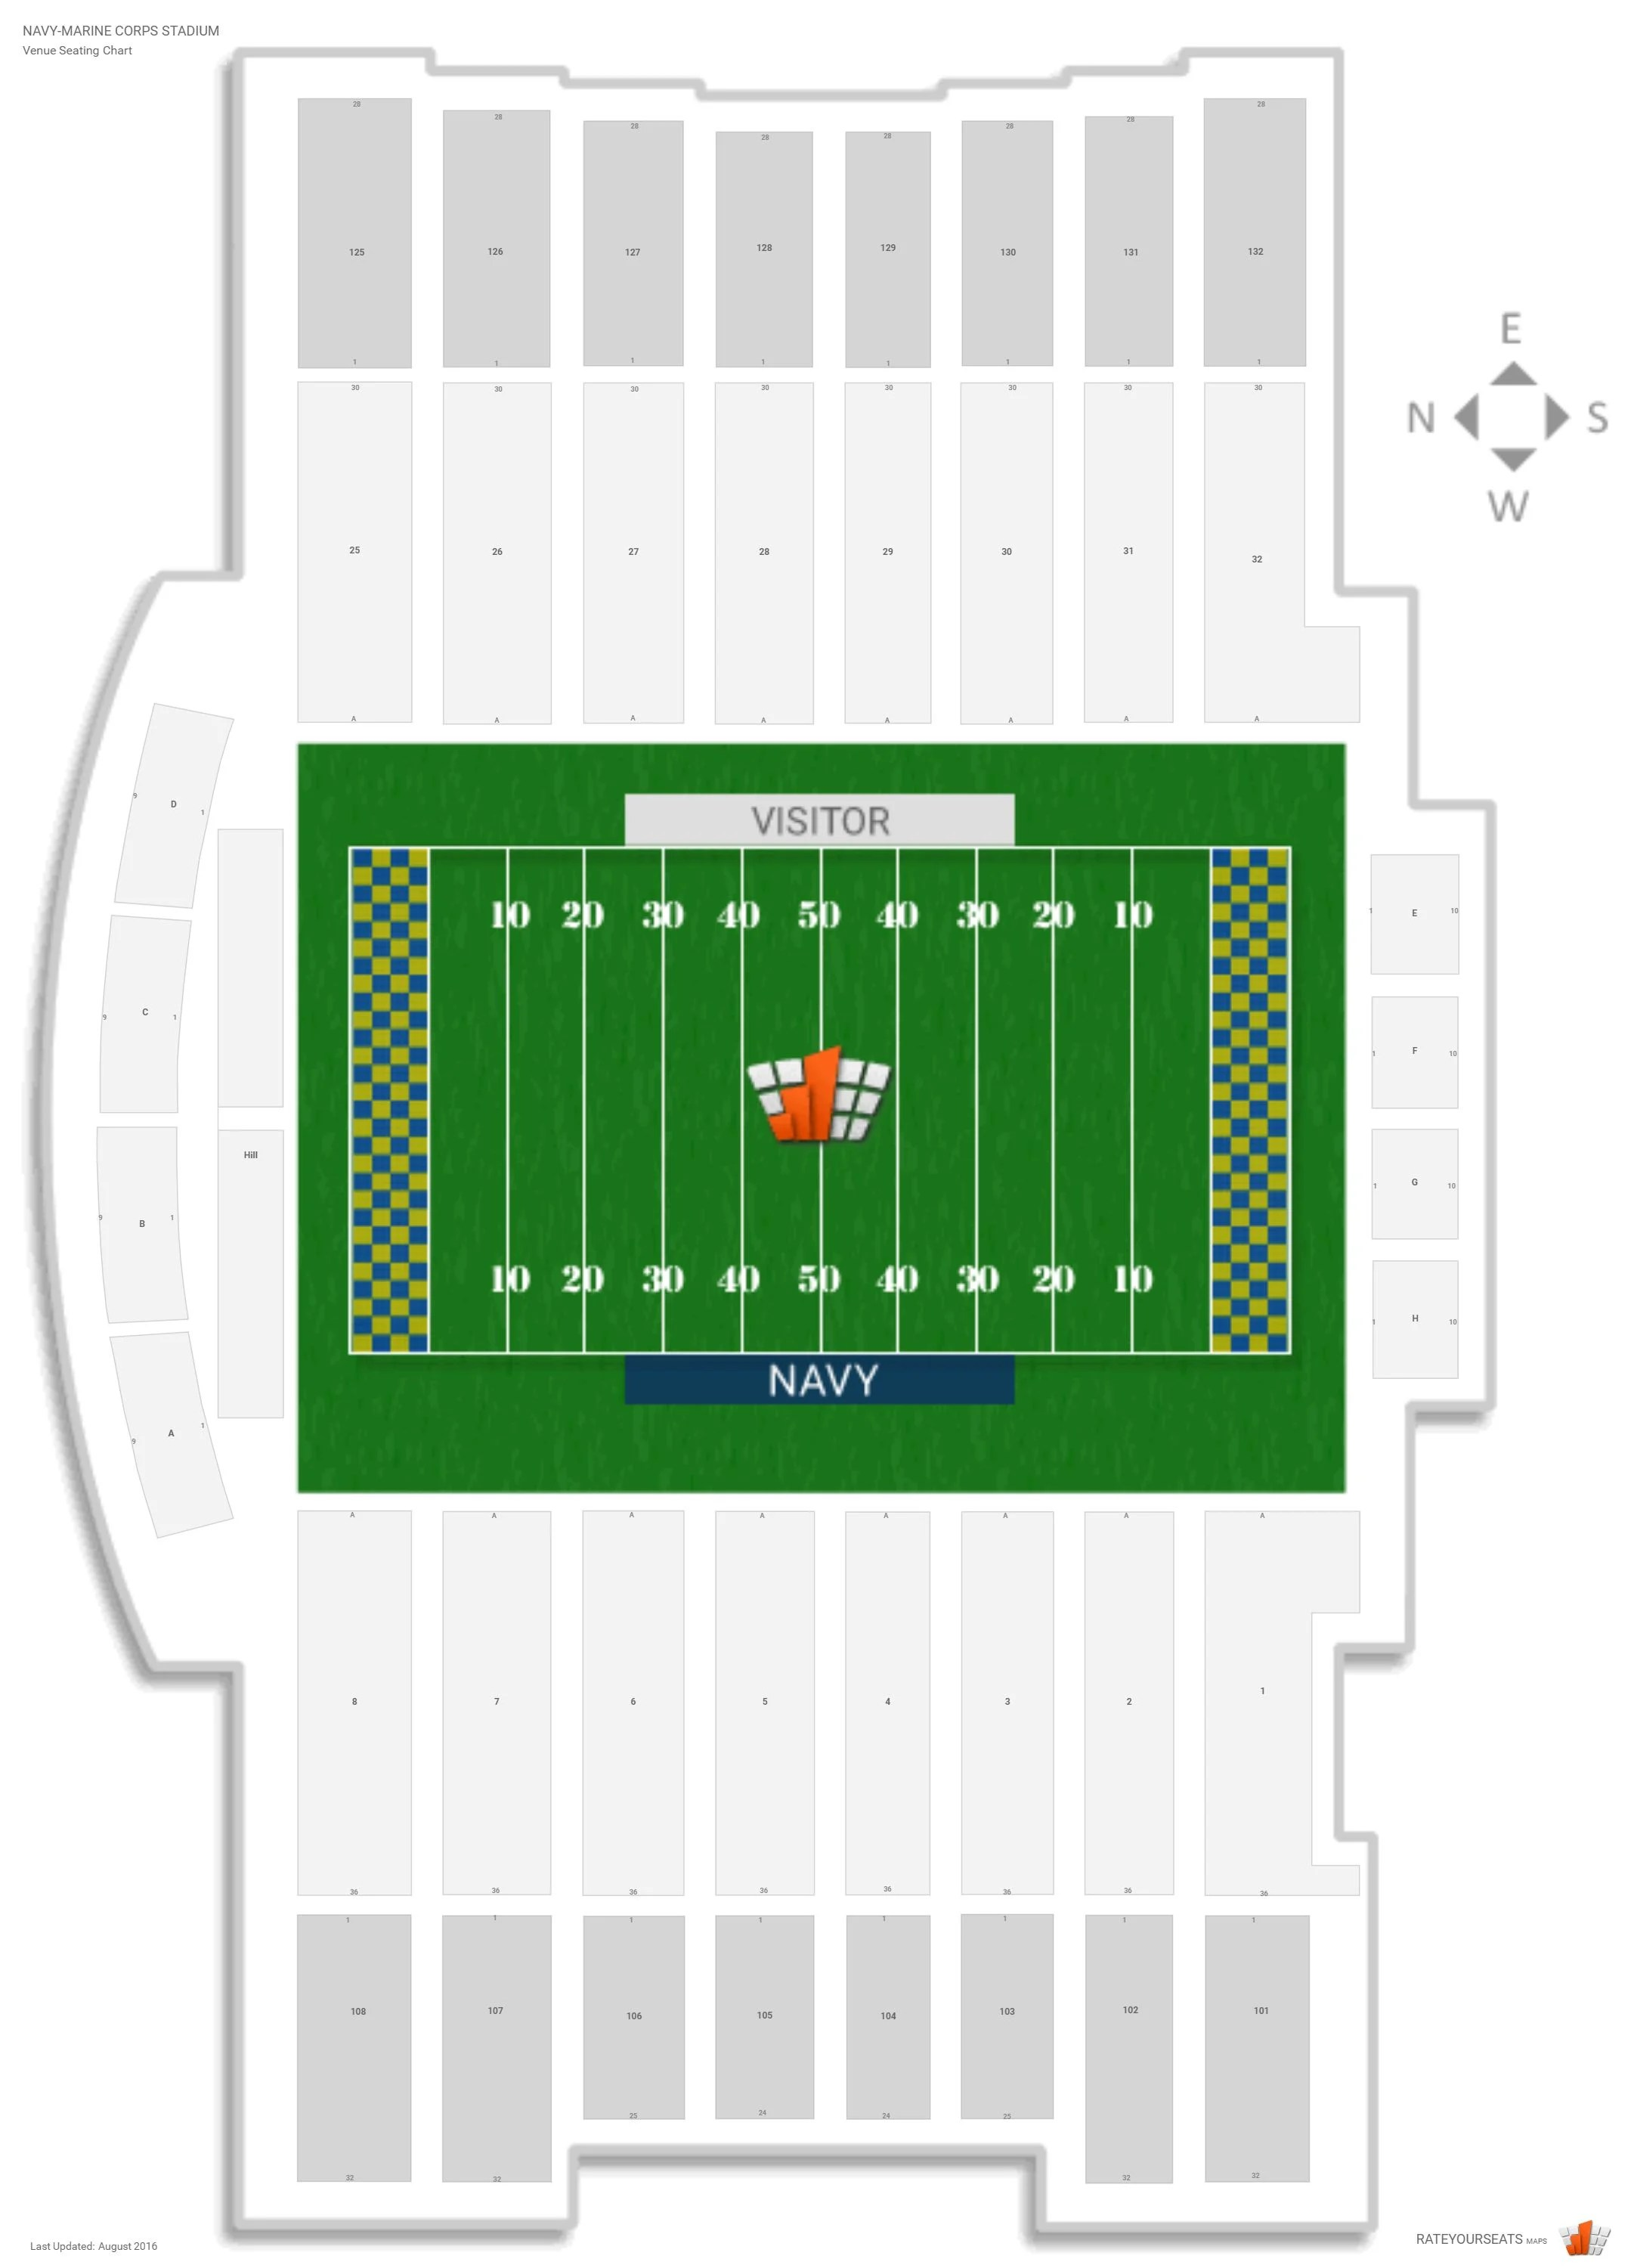 Navy Marine Corps Stadium Navy Seating Guide